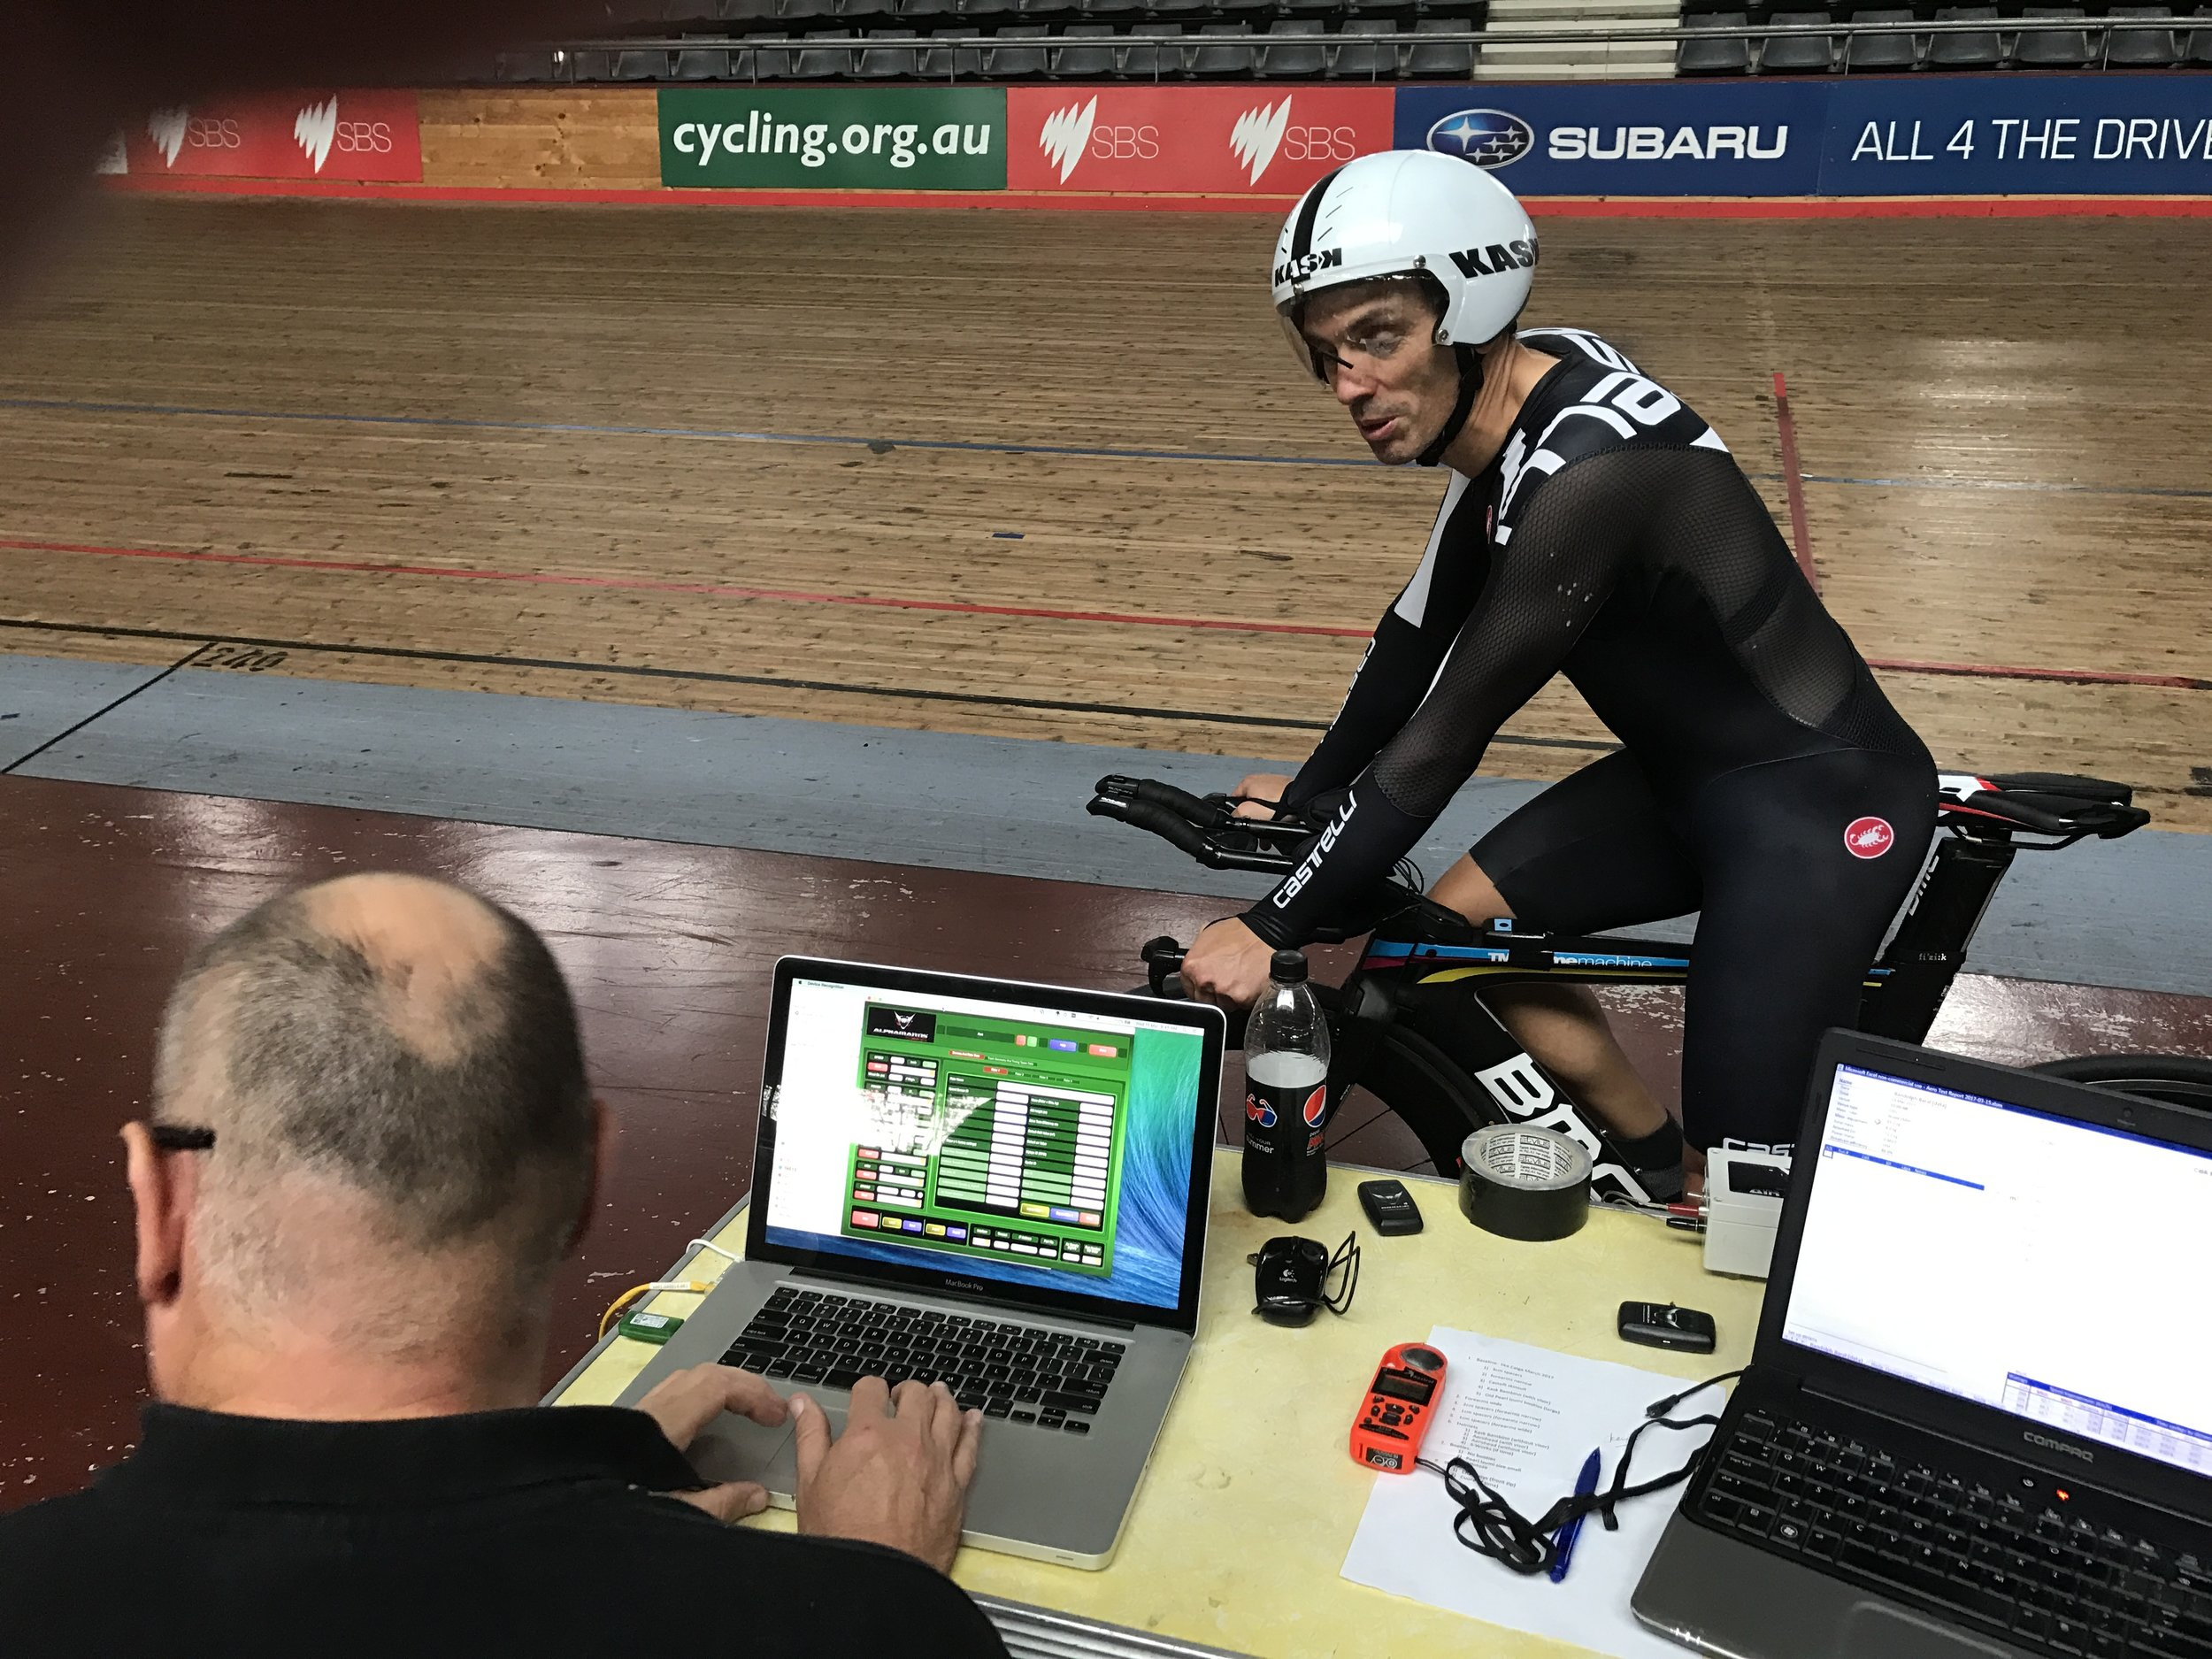 Alex Simmons (BiciSport) is the leading aero testing coach in Australia. Sessions are conducted at DGV over two hours on road and ITT bikes ... all designed to improve aero efficiency and improve competitive results